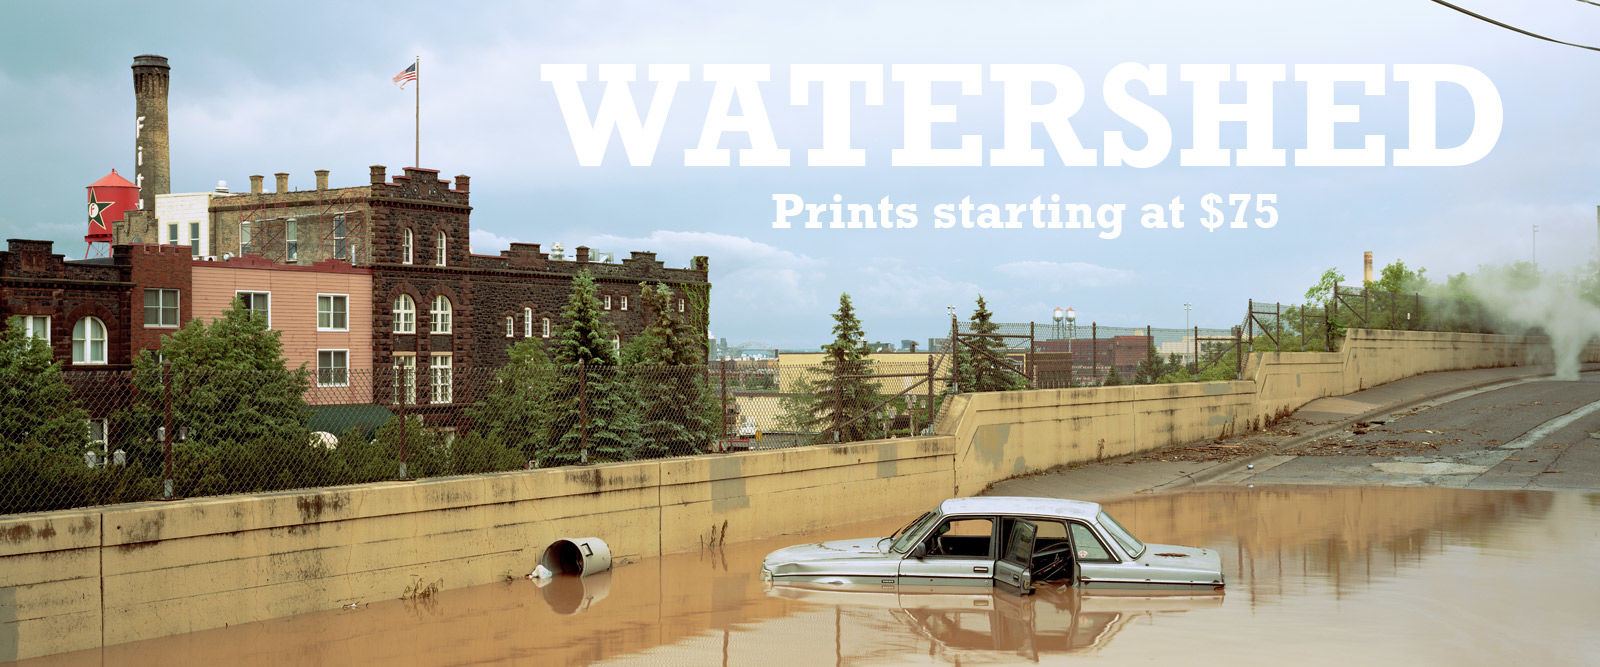 Photographing The Lake Superior Watershed - Prints Starting at $75